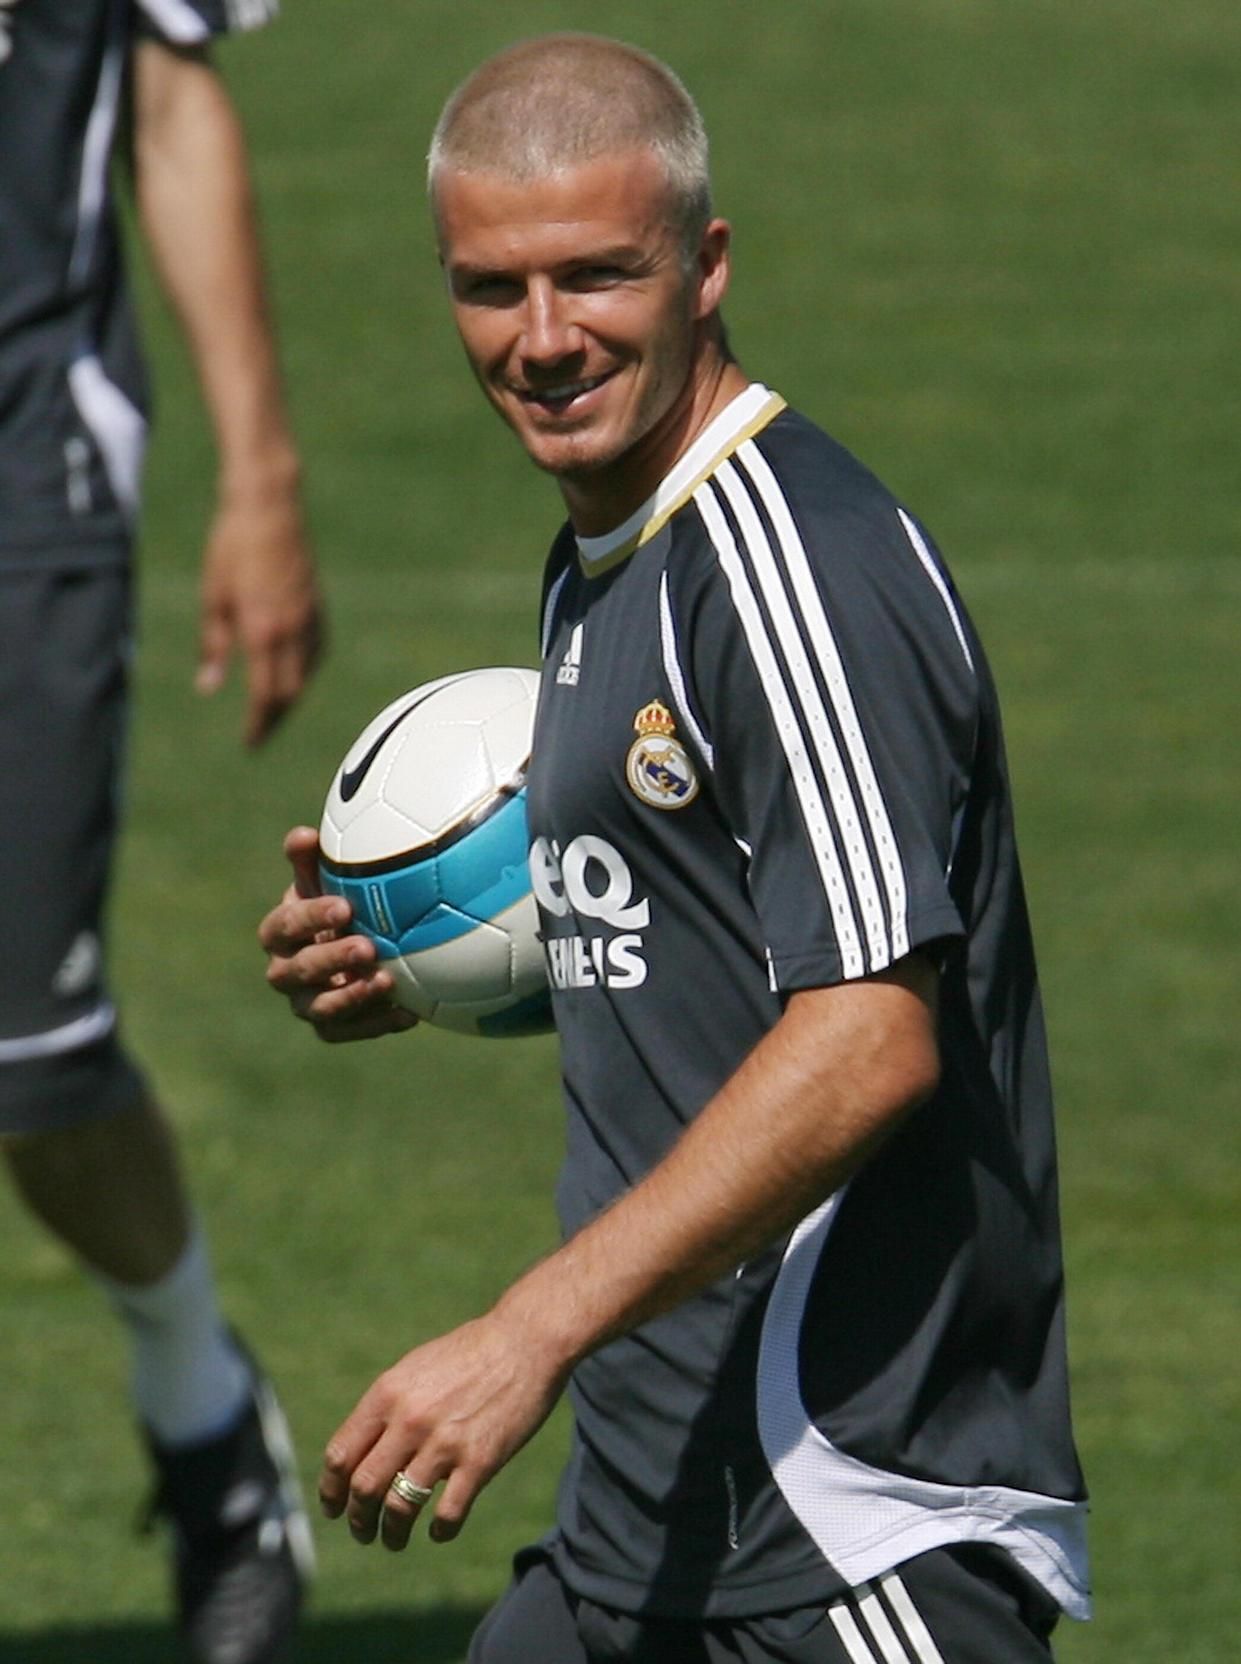 Madrid, SPAIN: Real Madrid's British midfielder David Beckham takes part in a training session in Madrid after cropping his recently dyed platinum blond hair, 10 May 2007. Beckham, who turned 32 last week, said he cut his hair because of the arrival of warm weather in the Spanish capital and he did not like his new look. AFP PHOTO/PHILIPPE DESMAZES (Photo credit should read PHILIPPE DESMAZES/AFP via Getty Images)